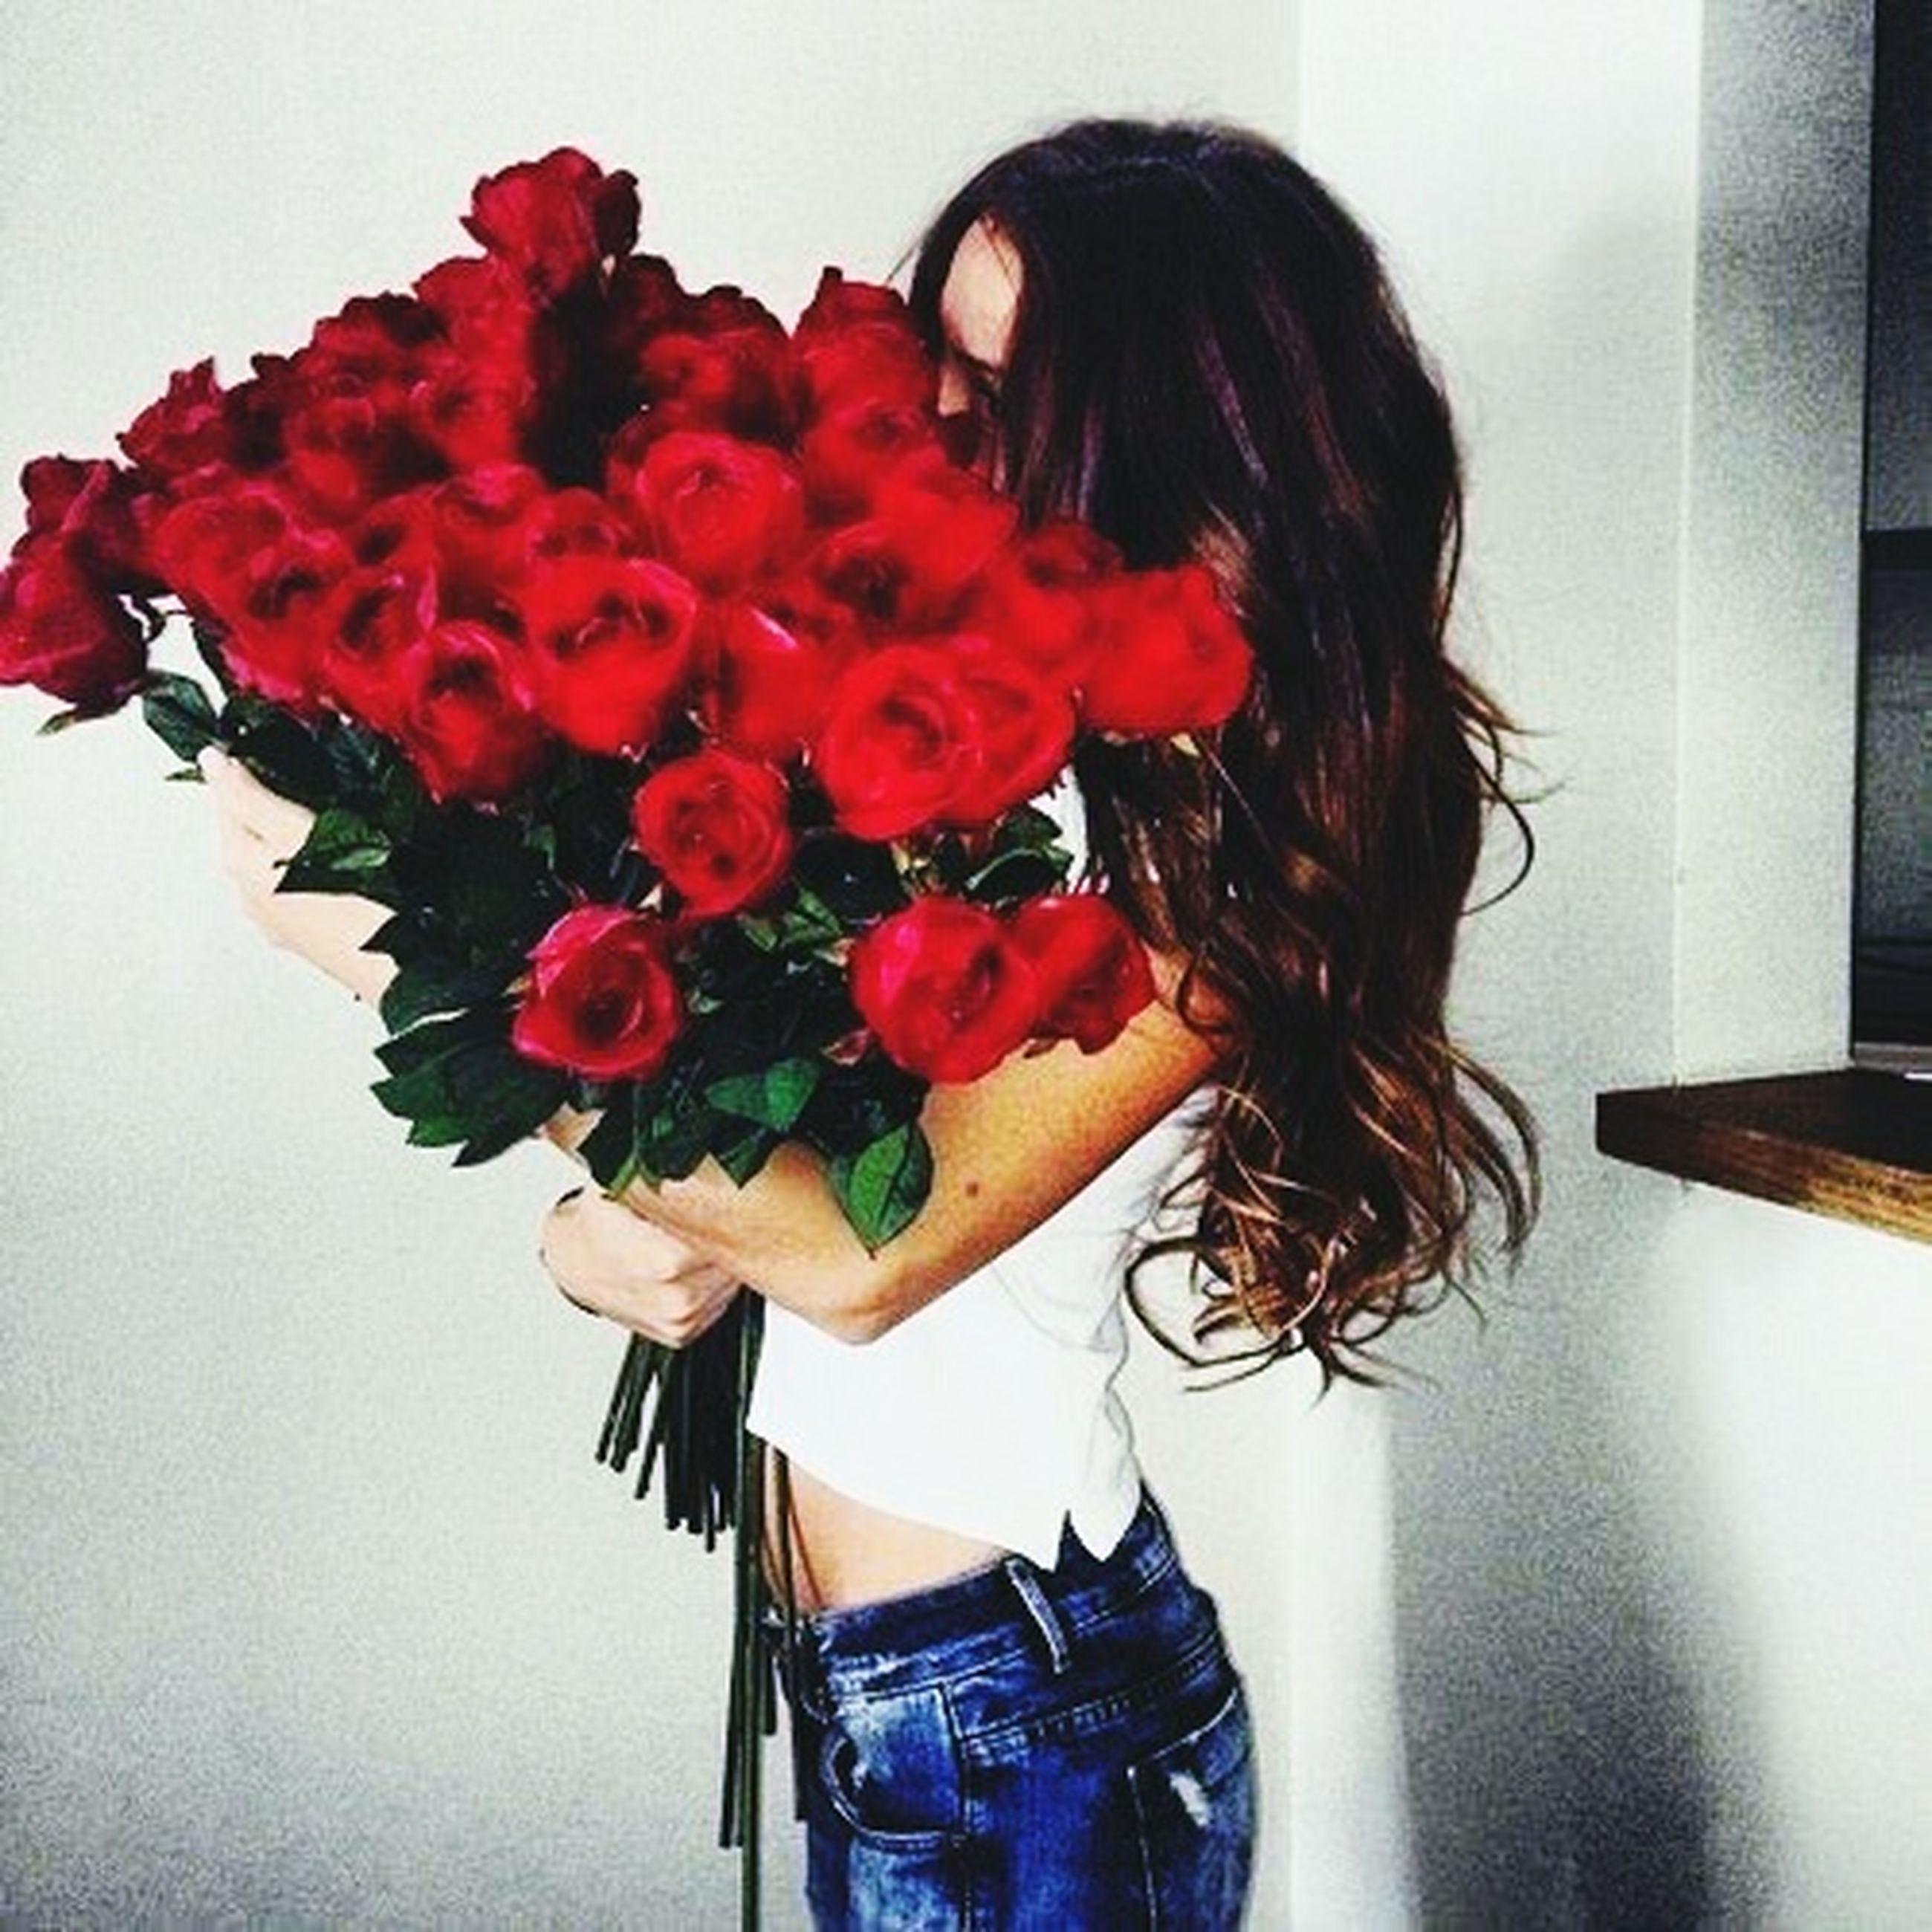 flower, rose - flower, red, fragility, freshness, bouquet, only women, holding, beauty, one person, one woman only, women, adults only, adult, beauty in nature, people, young adult, one young woman only, nature, flower head, human hand, day